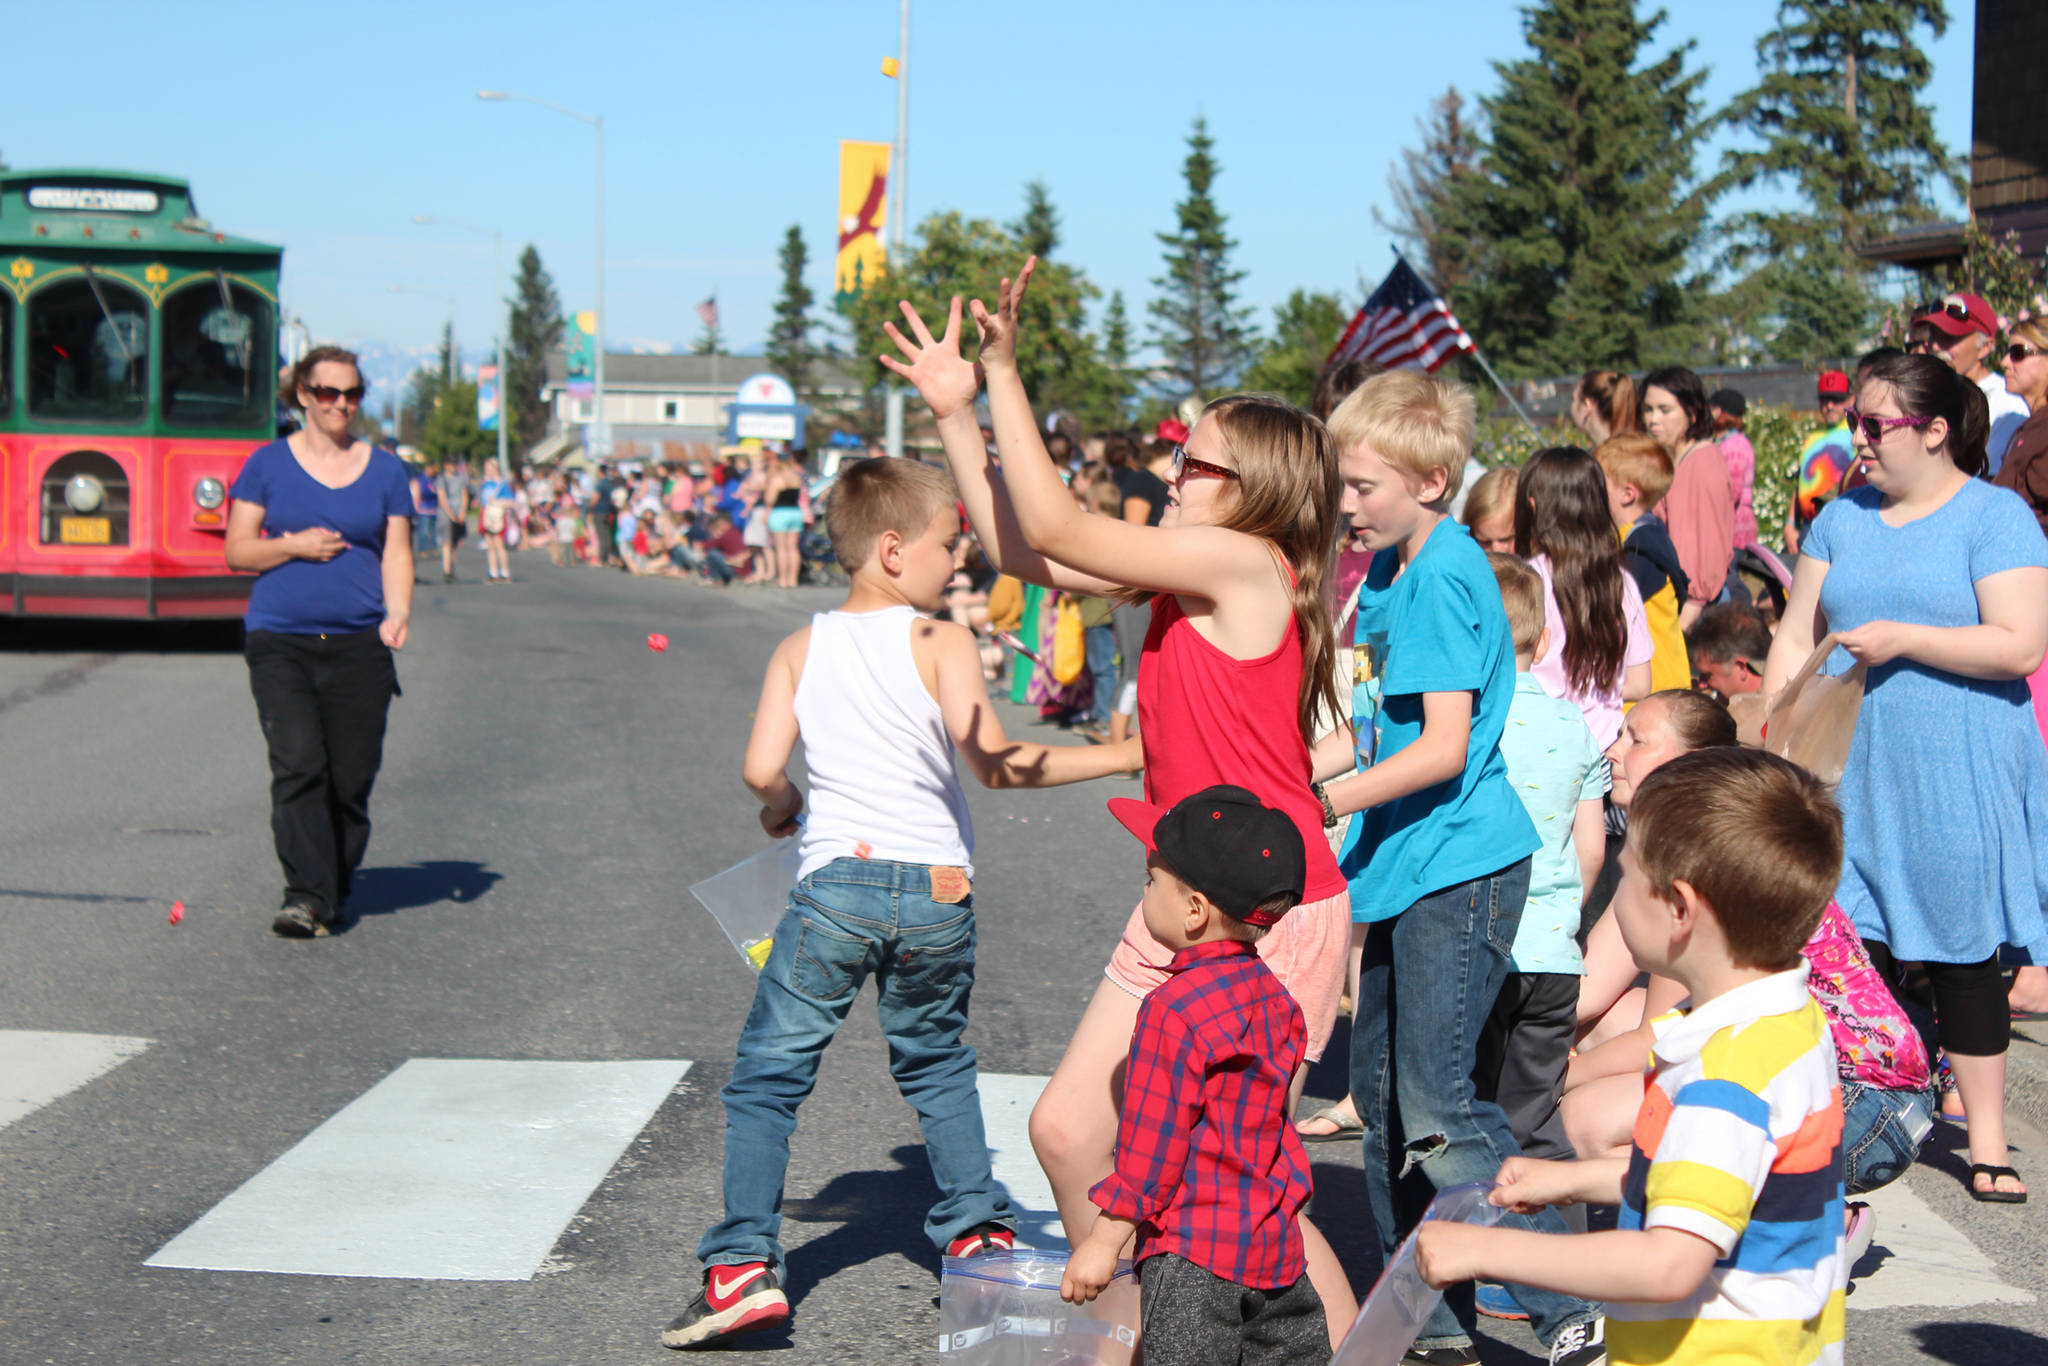 Children scramble for candy tossed from passing floats and parade walkers during this year's Independence Day parade Wednesday, July 4, 2018 on Pioneer Avenue in Homer, Alaska. (Photo by Megan Pacer/Homer News)